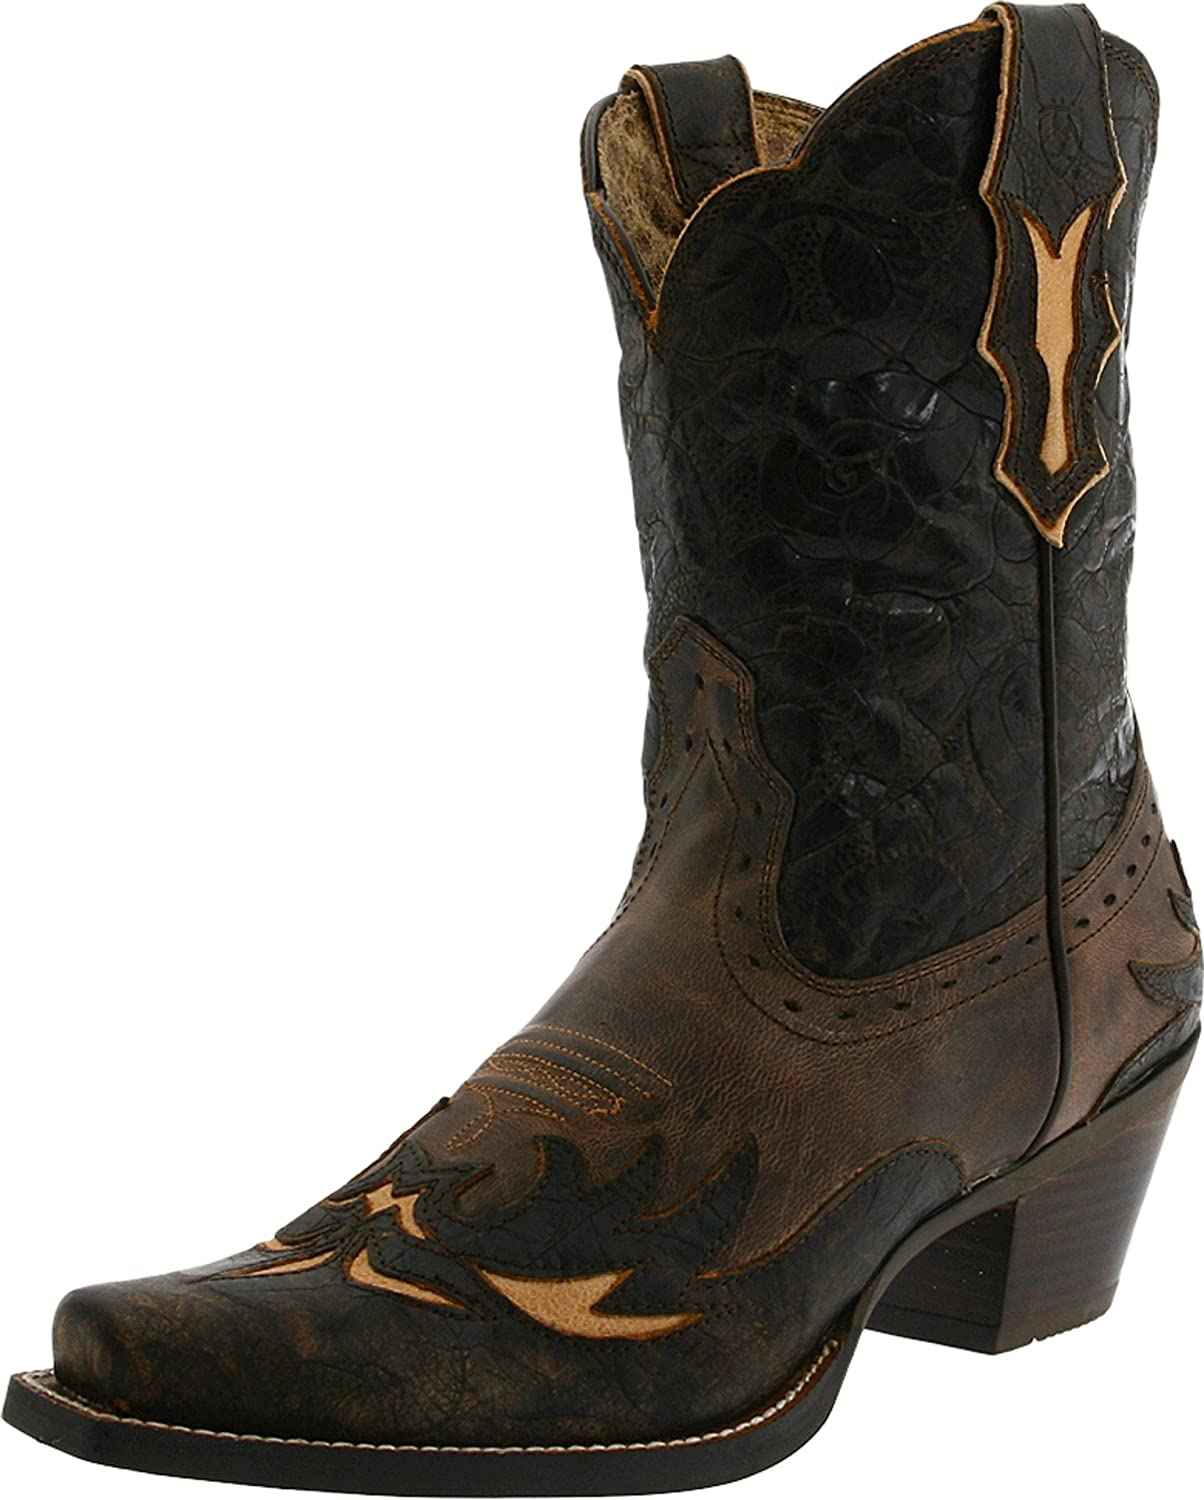 Ariat Women's Dahlia Western Fashion Boot